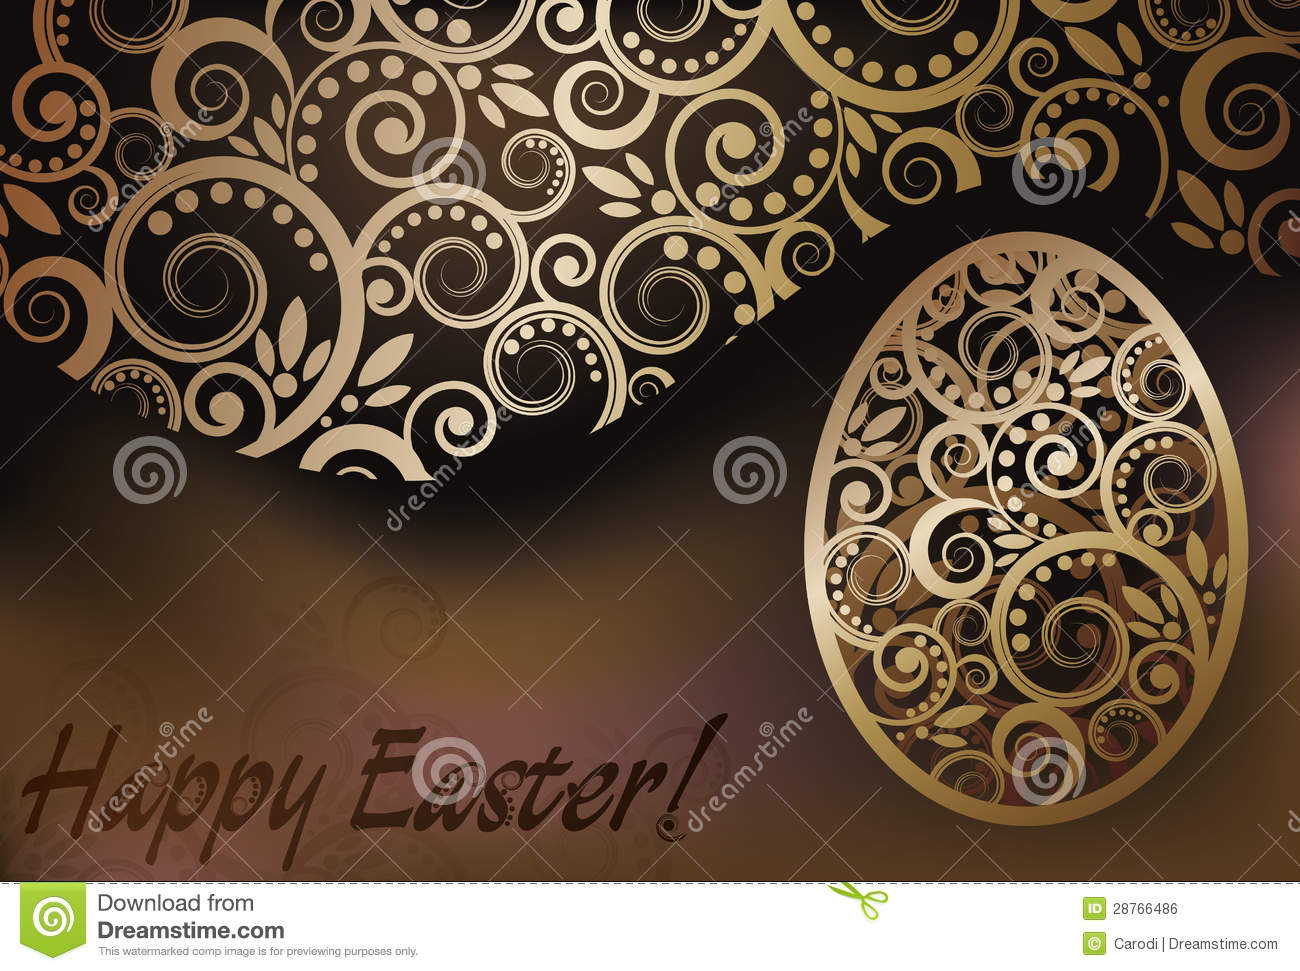 Happy Easter Religious Happy easter banner